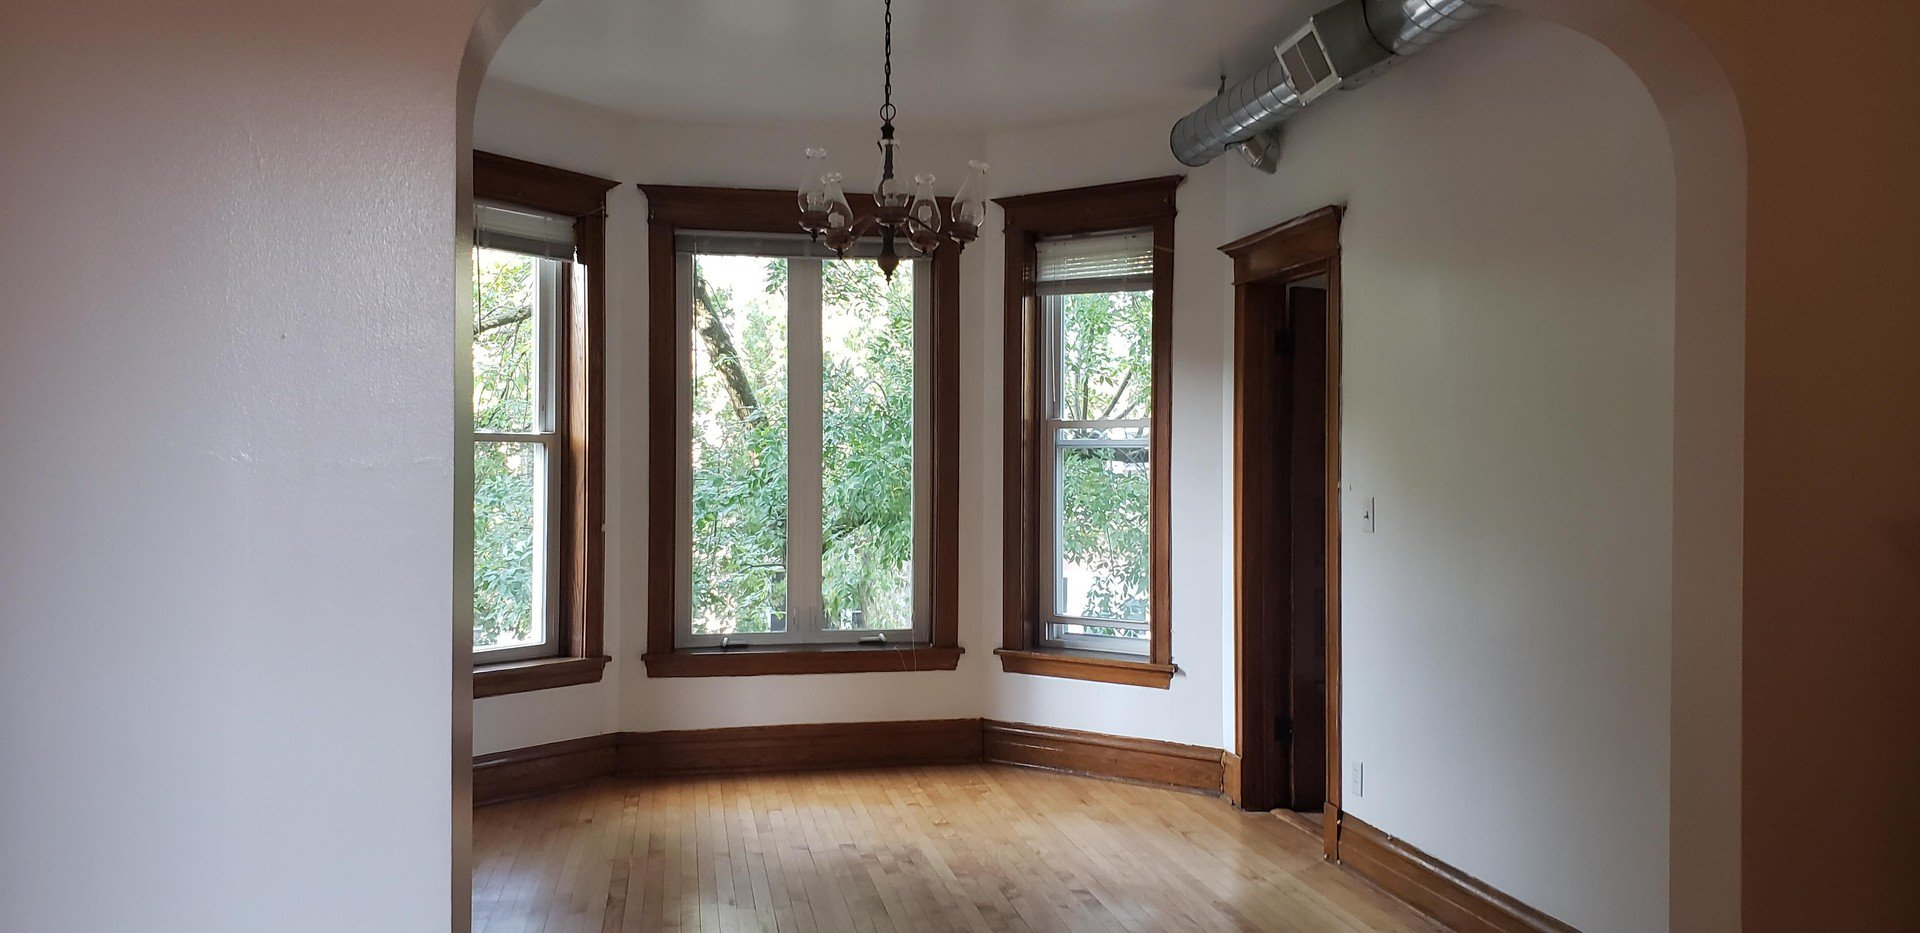 Photo 3: Photos: 2715 Evergreen Avenue Unit 2 in Chicago: CHI - West Town Residential Lease for lease ()  : MLS®# MRD10877768